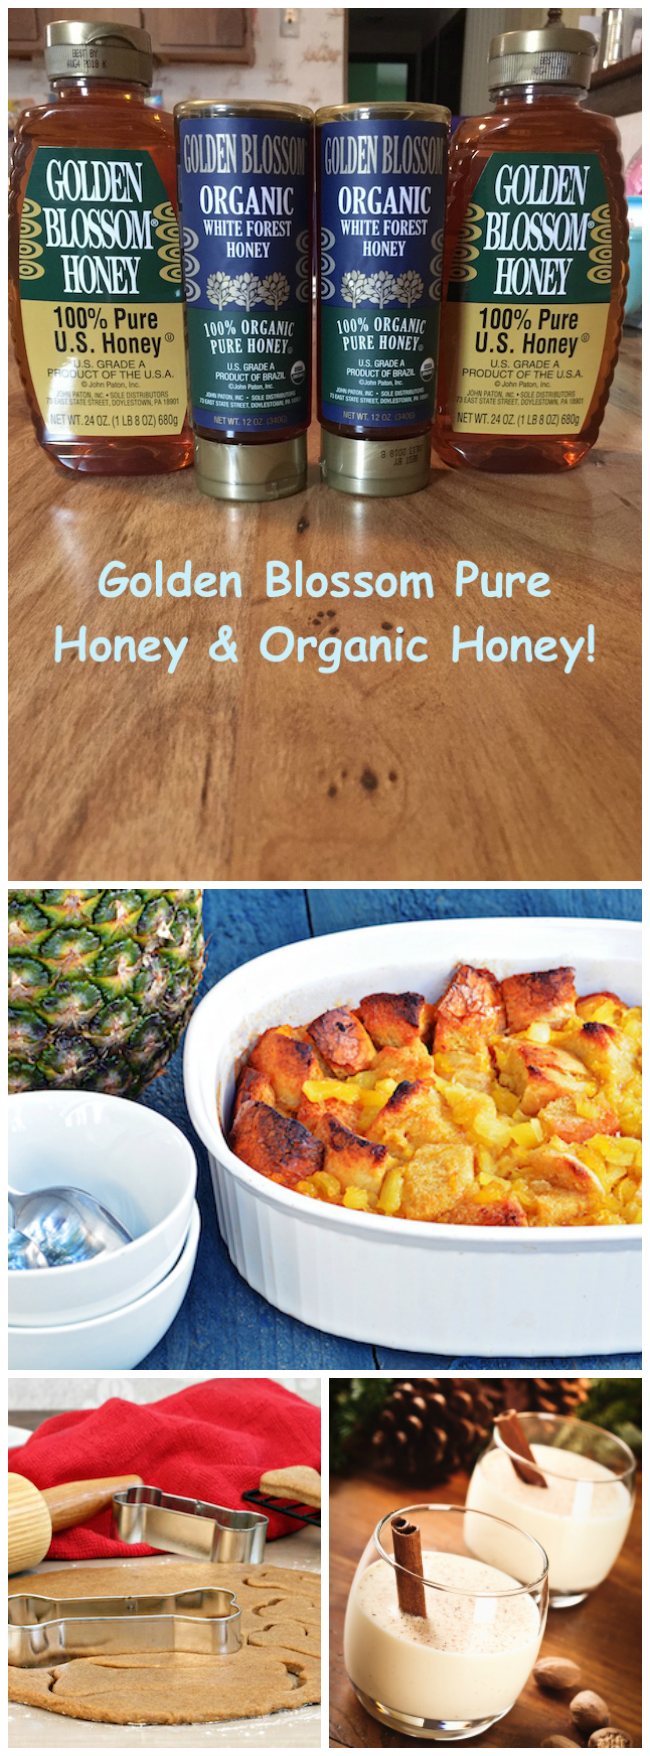 GOLDEN BLOSSOM HONEY is composed of three honeys; extra-white clover, sage buckwheat and orange blossom & gives it a distinct flavor, color & fragrance.